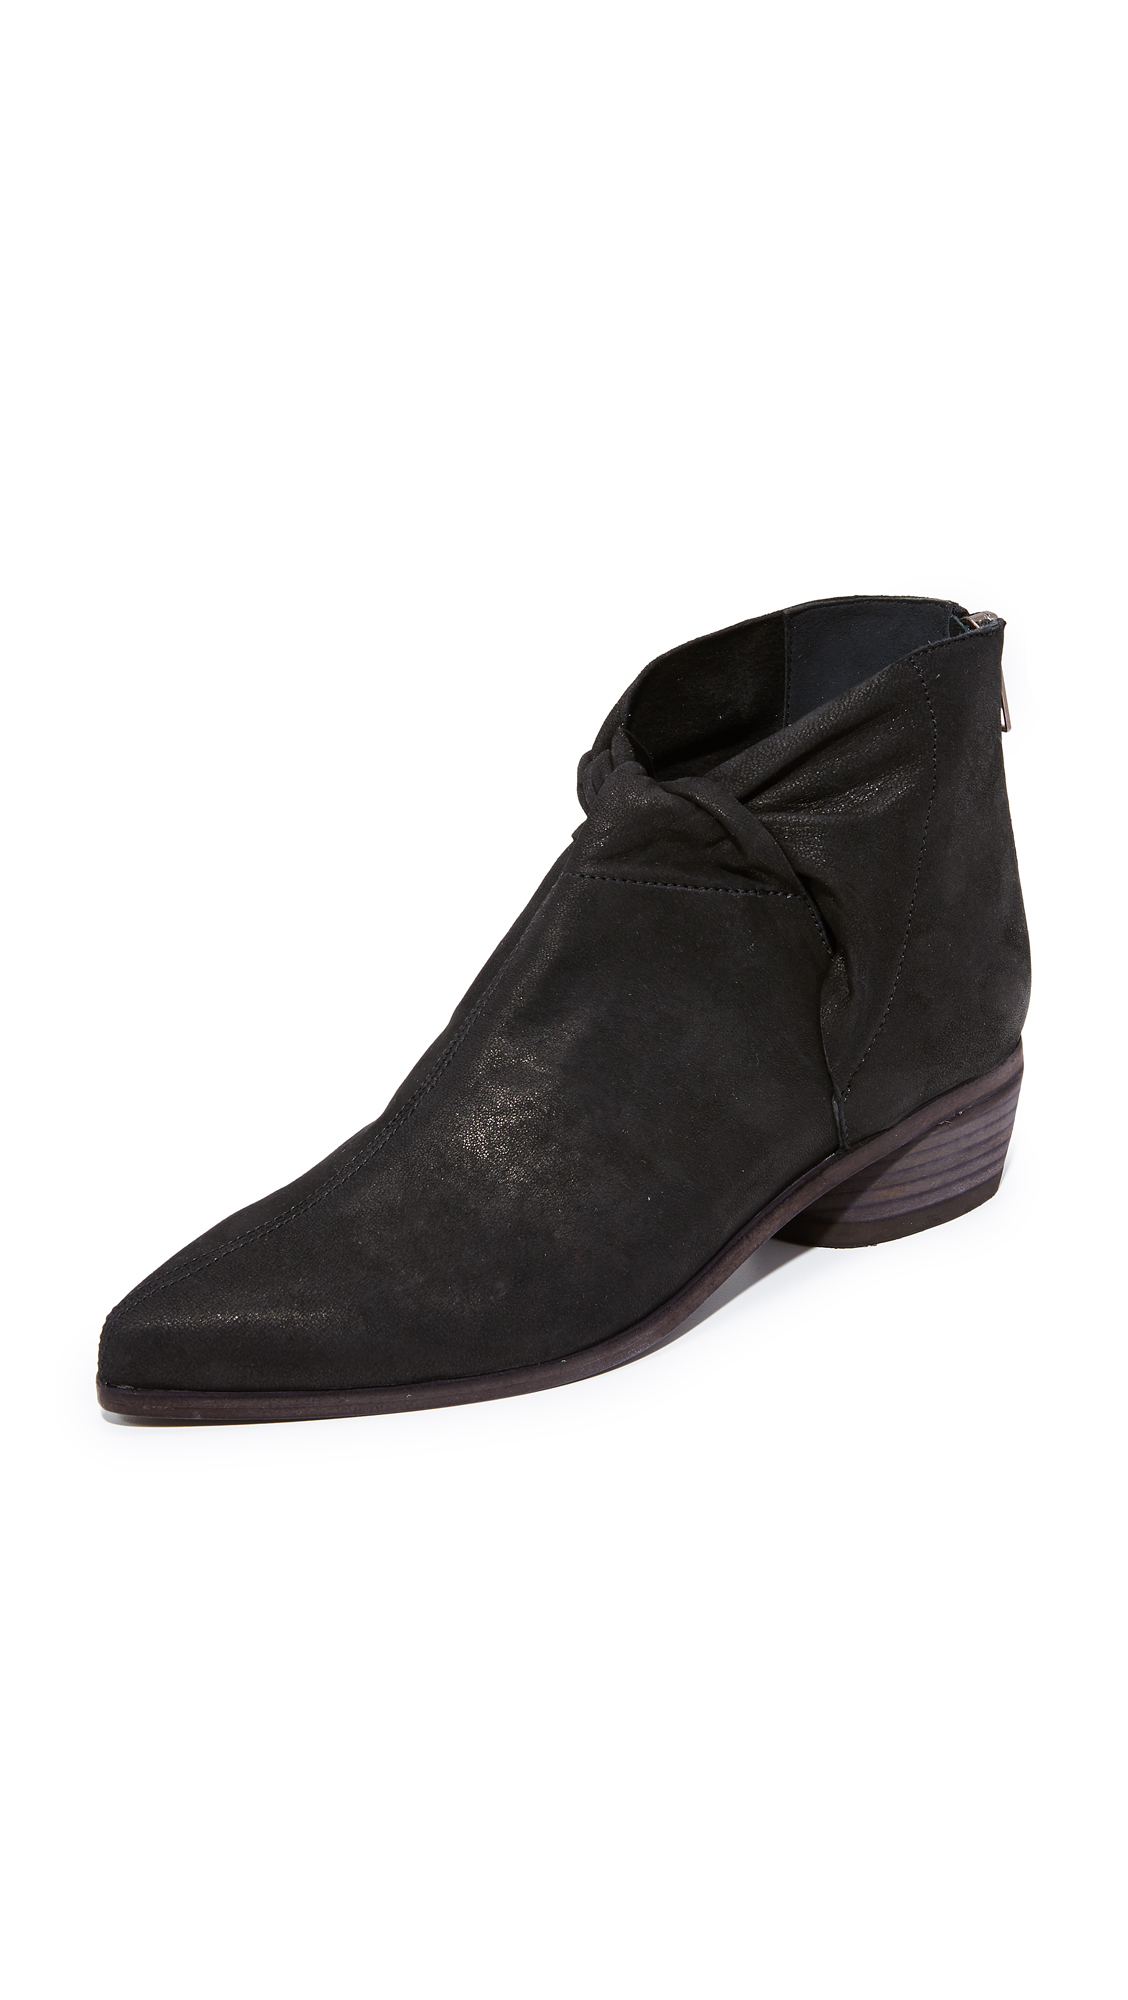 LD Tuttle The Marble Knot Booties - Black